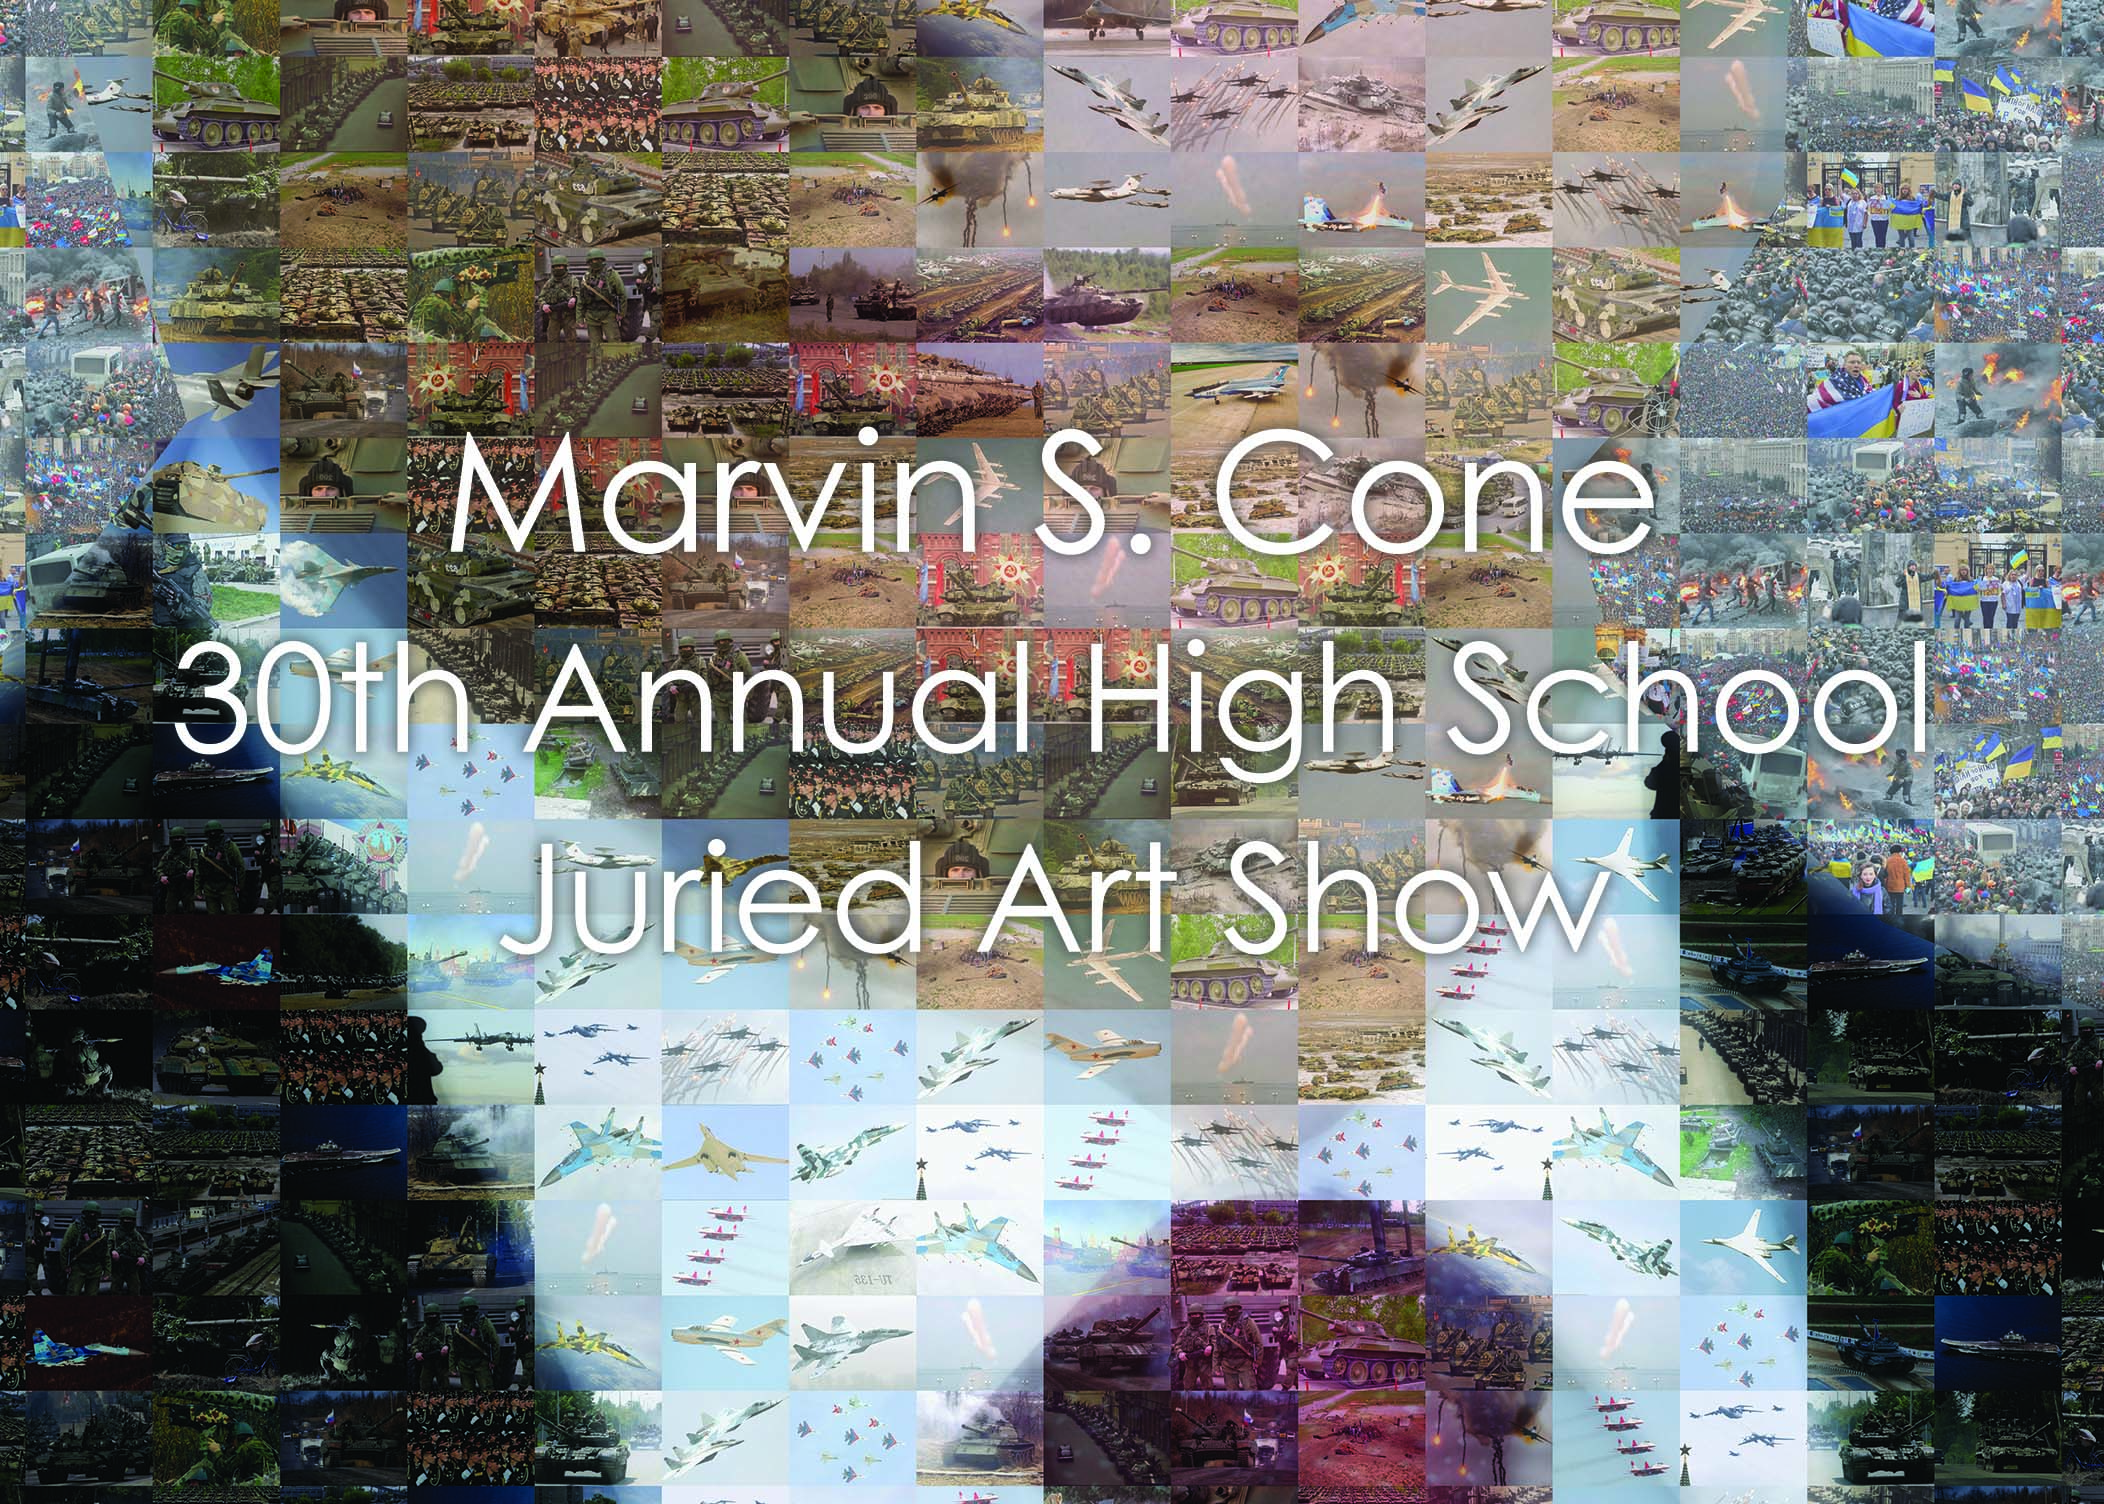 Marvin S. Cone 30th Annual High School Juried Art Show